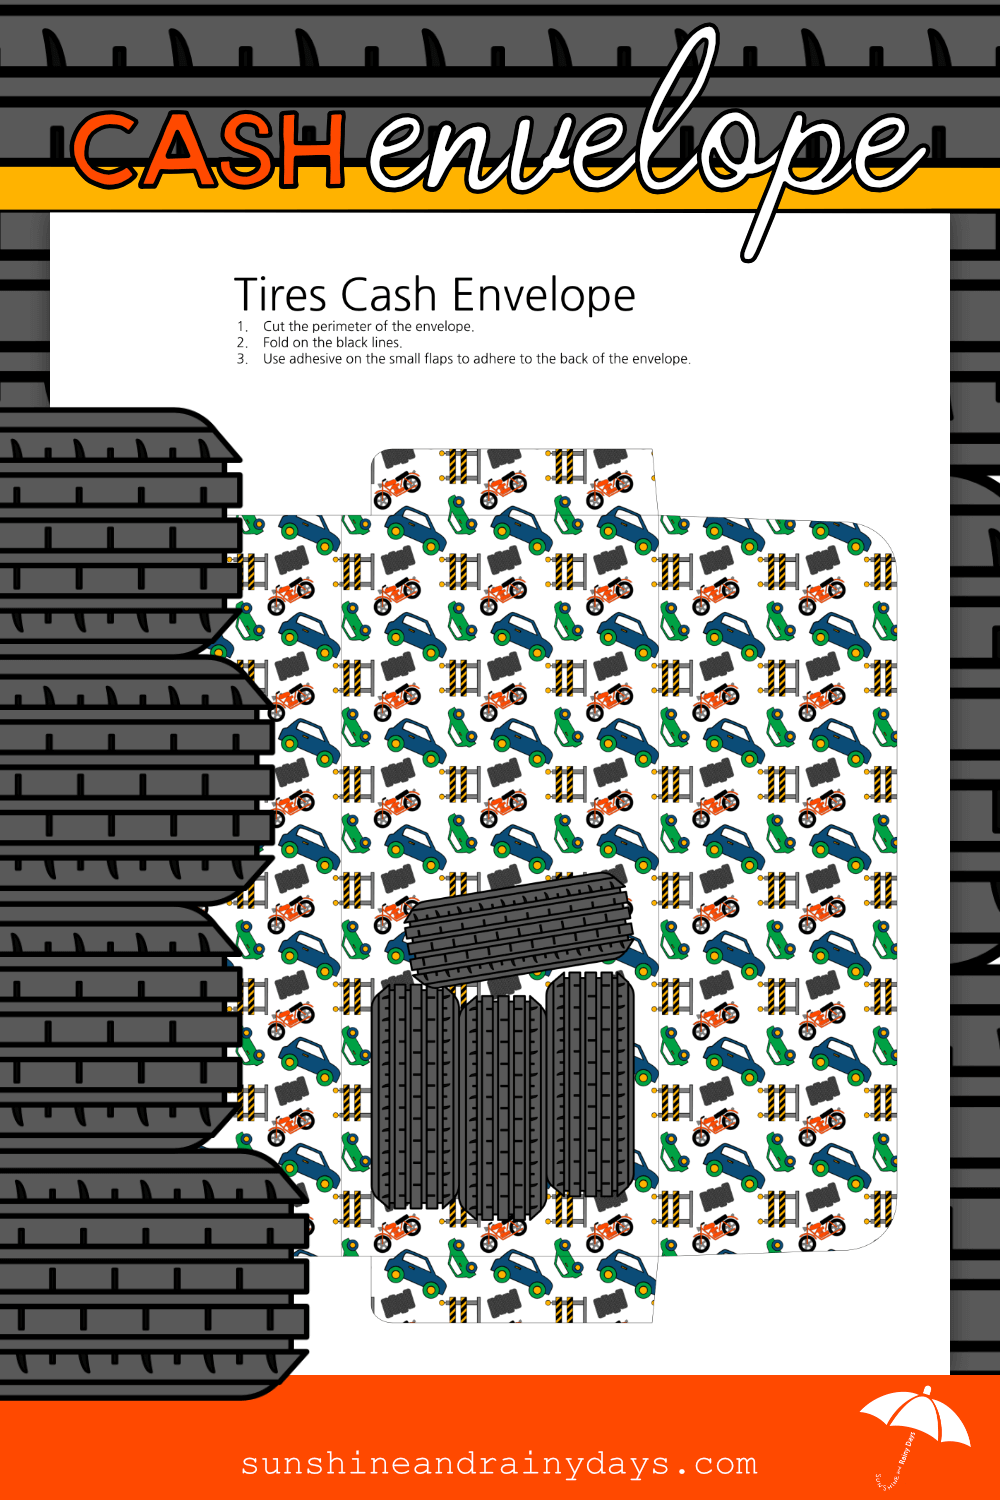 Tires Cash Envelope (PDF)